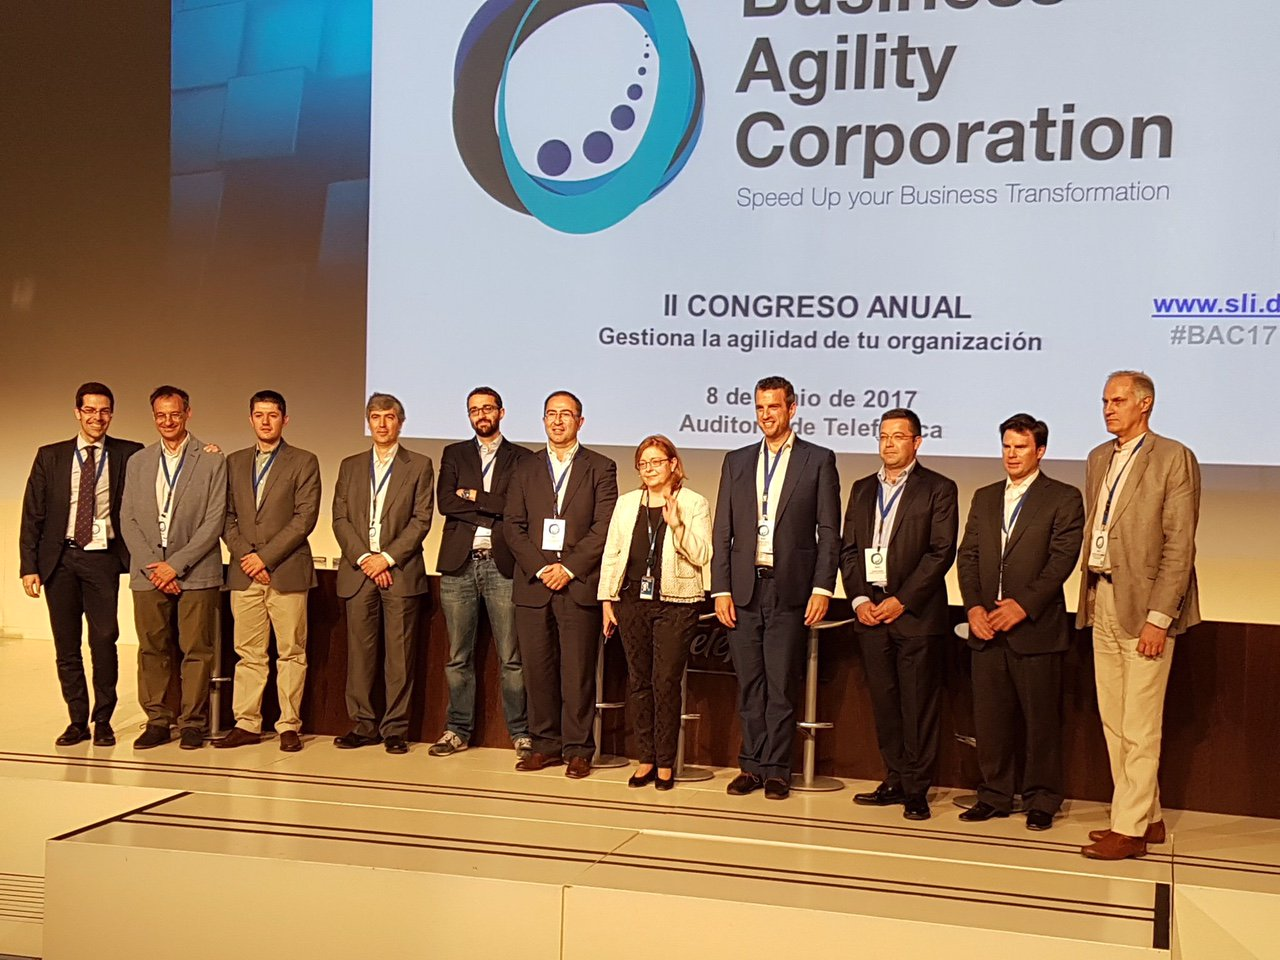 II Congreso Anual Business Agility Corporation (BAC)